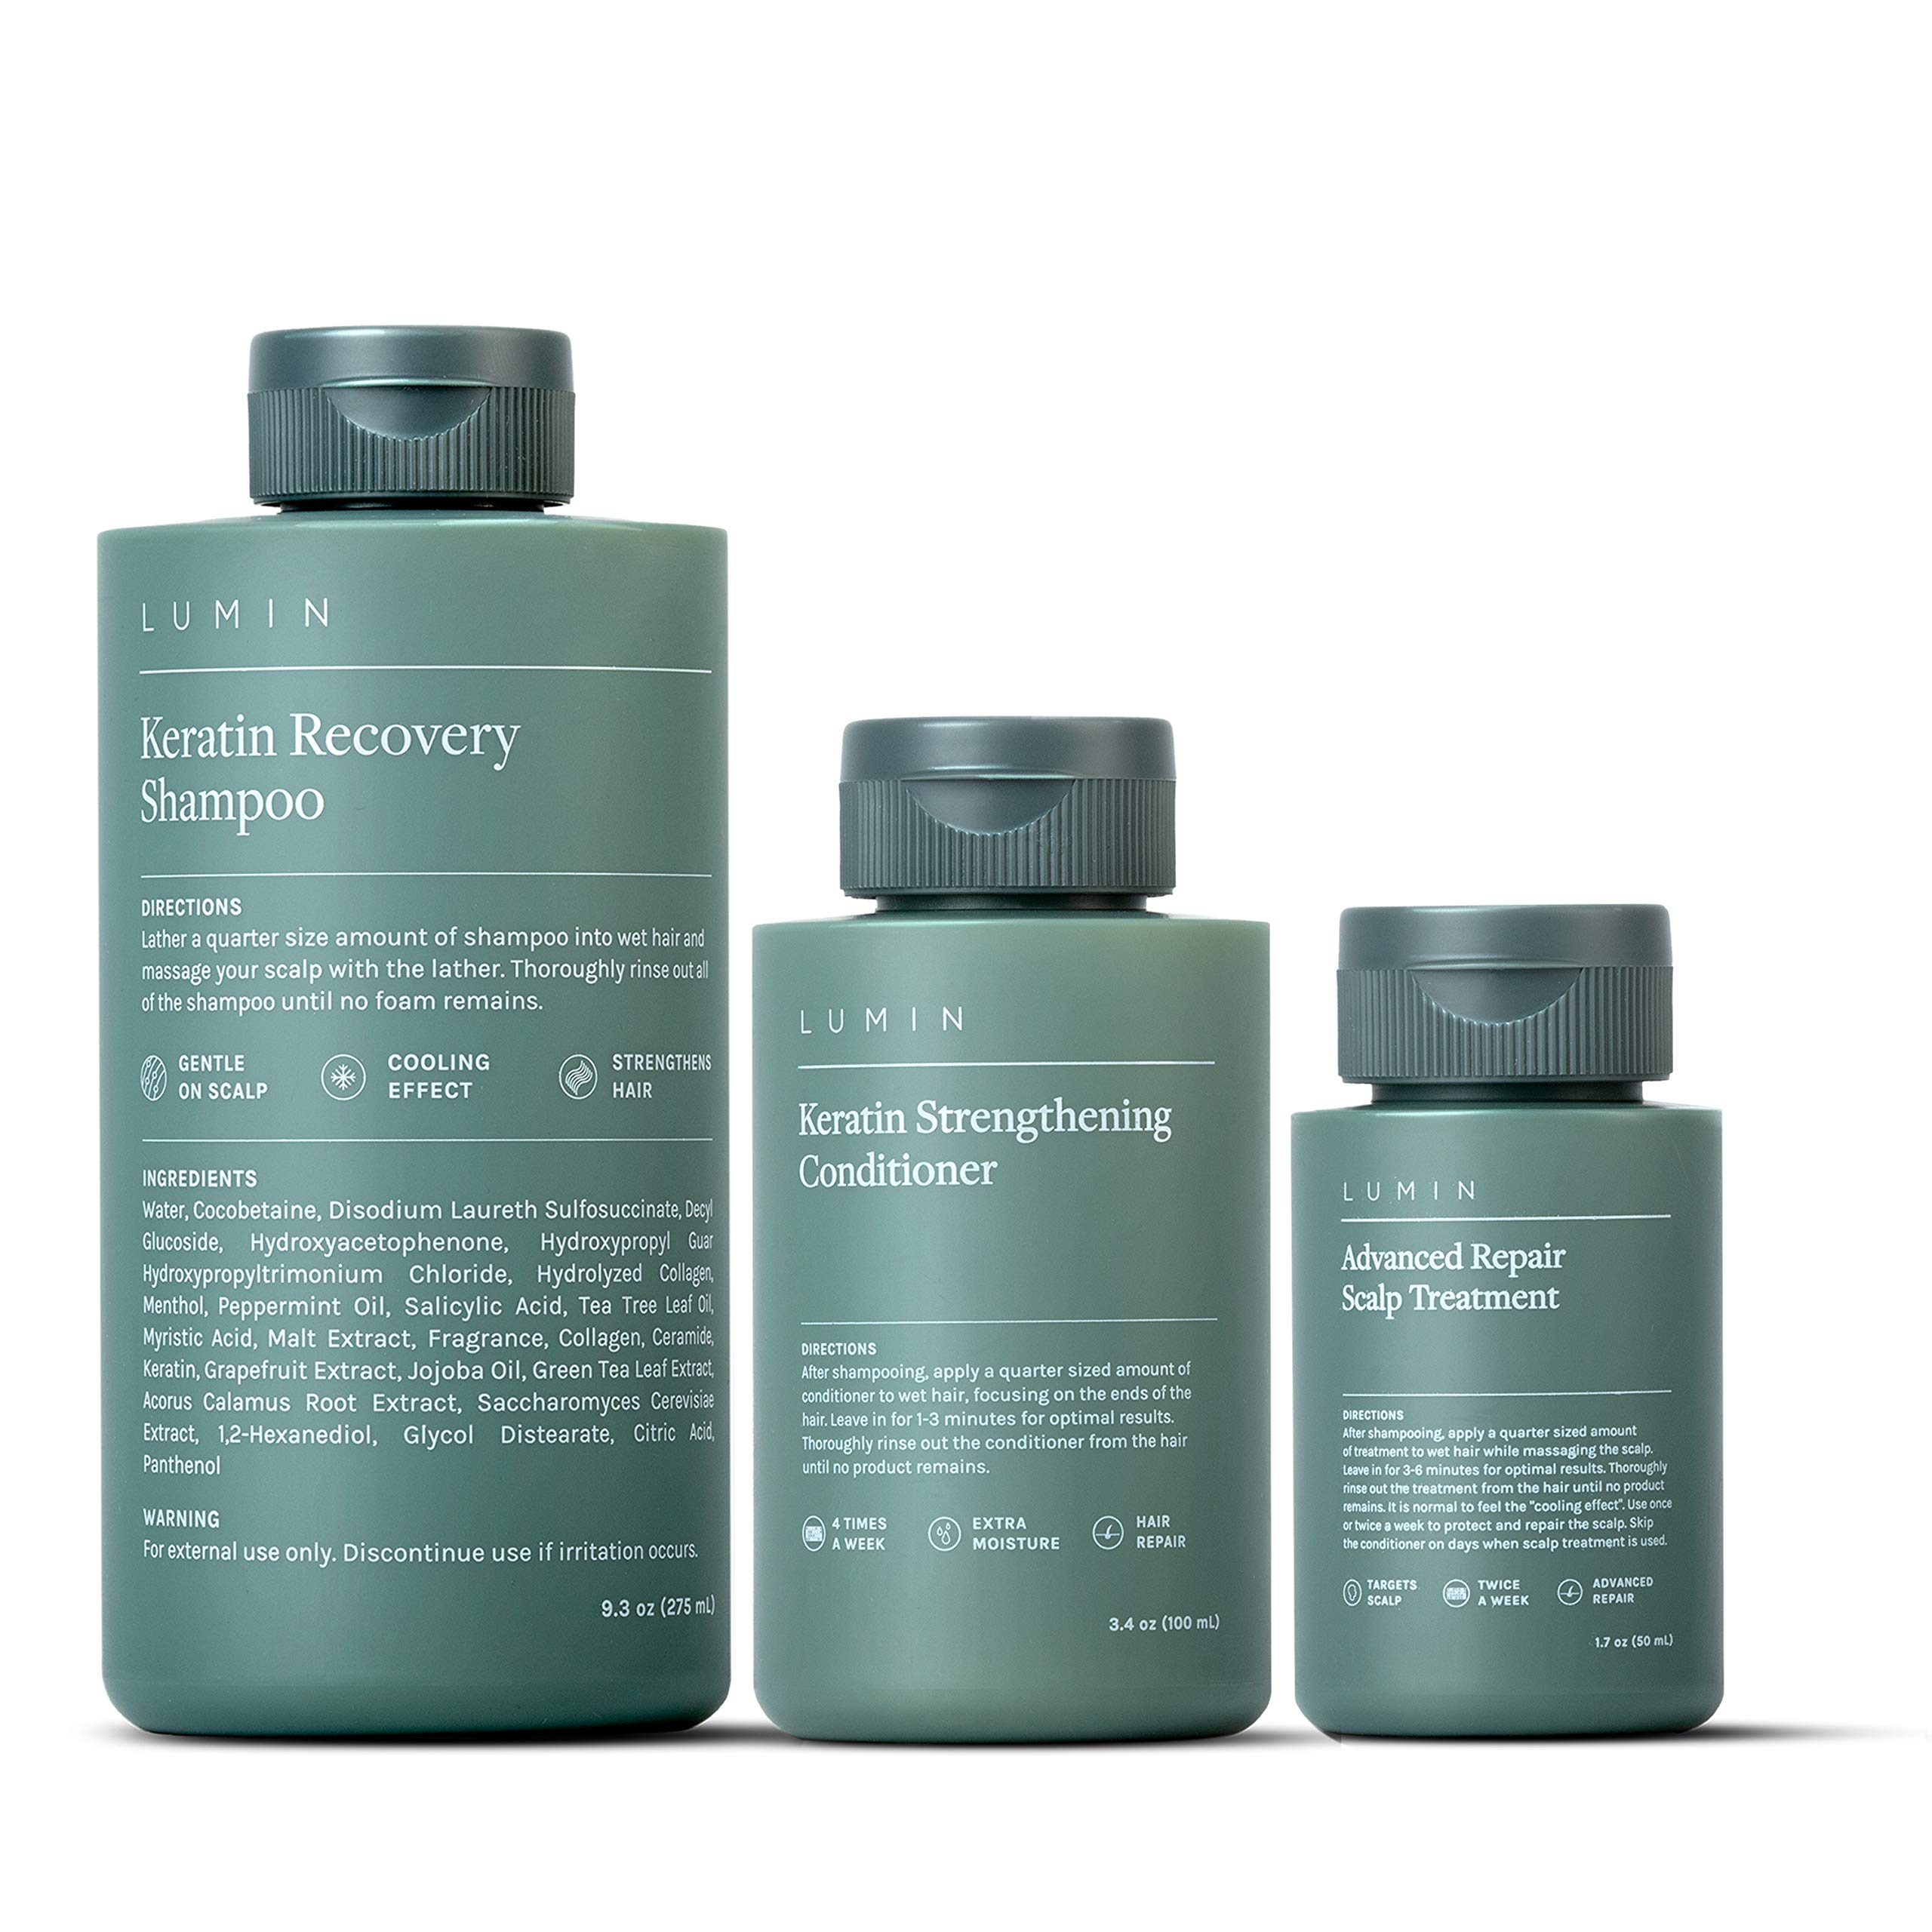 The Scalp Recovery Set for Men: Includes Includes Keratin Recovery Shampoo to Boost Hair Growth + Keratin Conditioner to Repair + Scalp Treatment to Improve Health of Hair - by Lumin